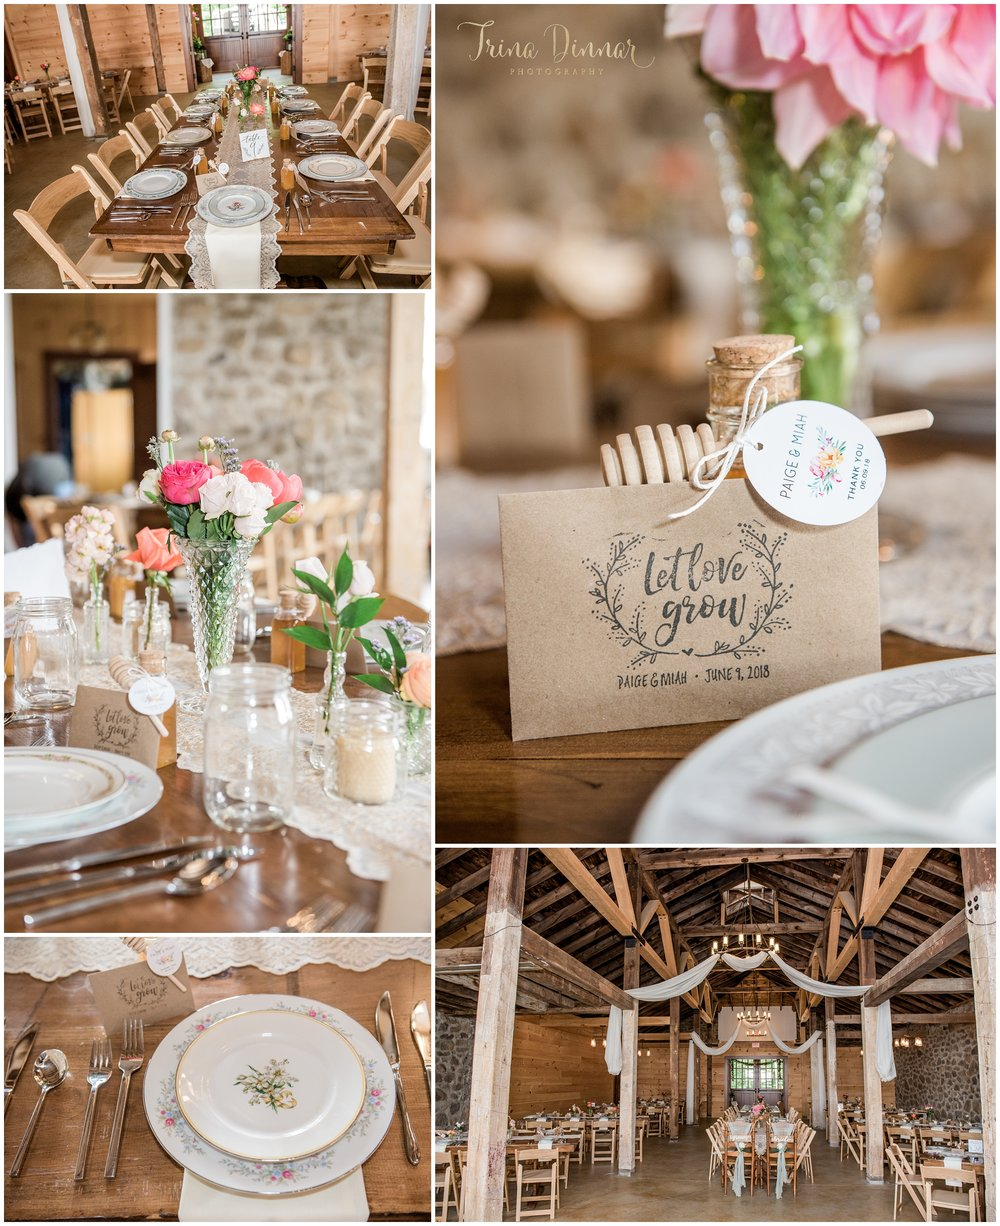 Rustic Maine Barn wedding inspiration